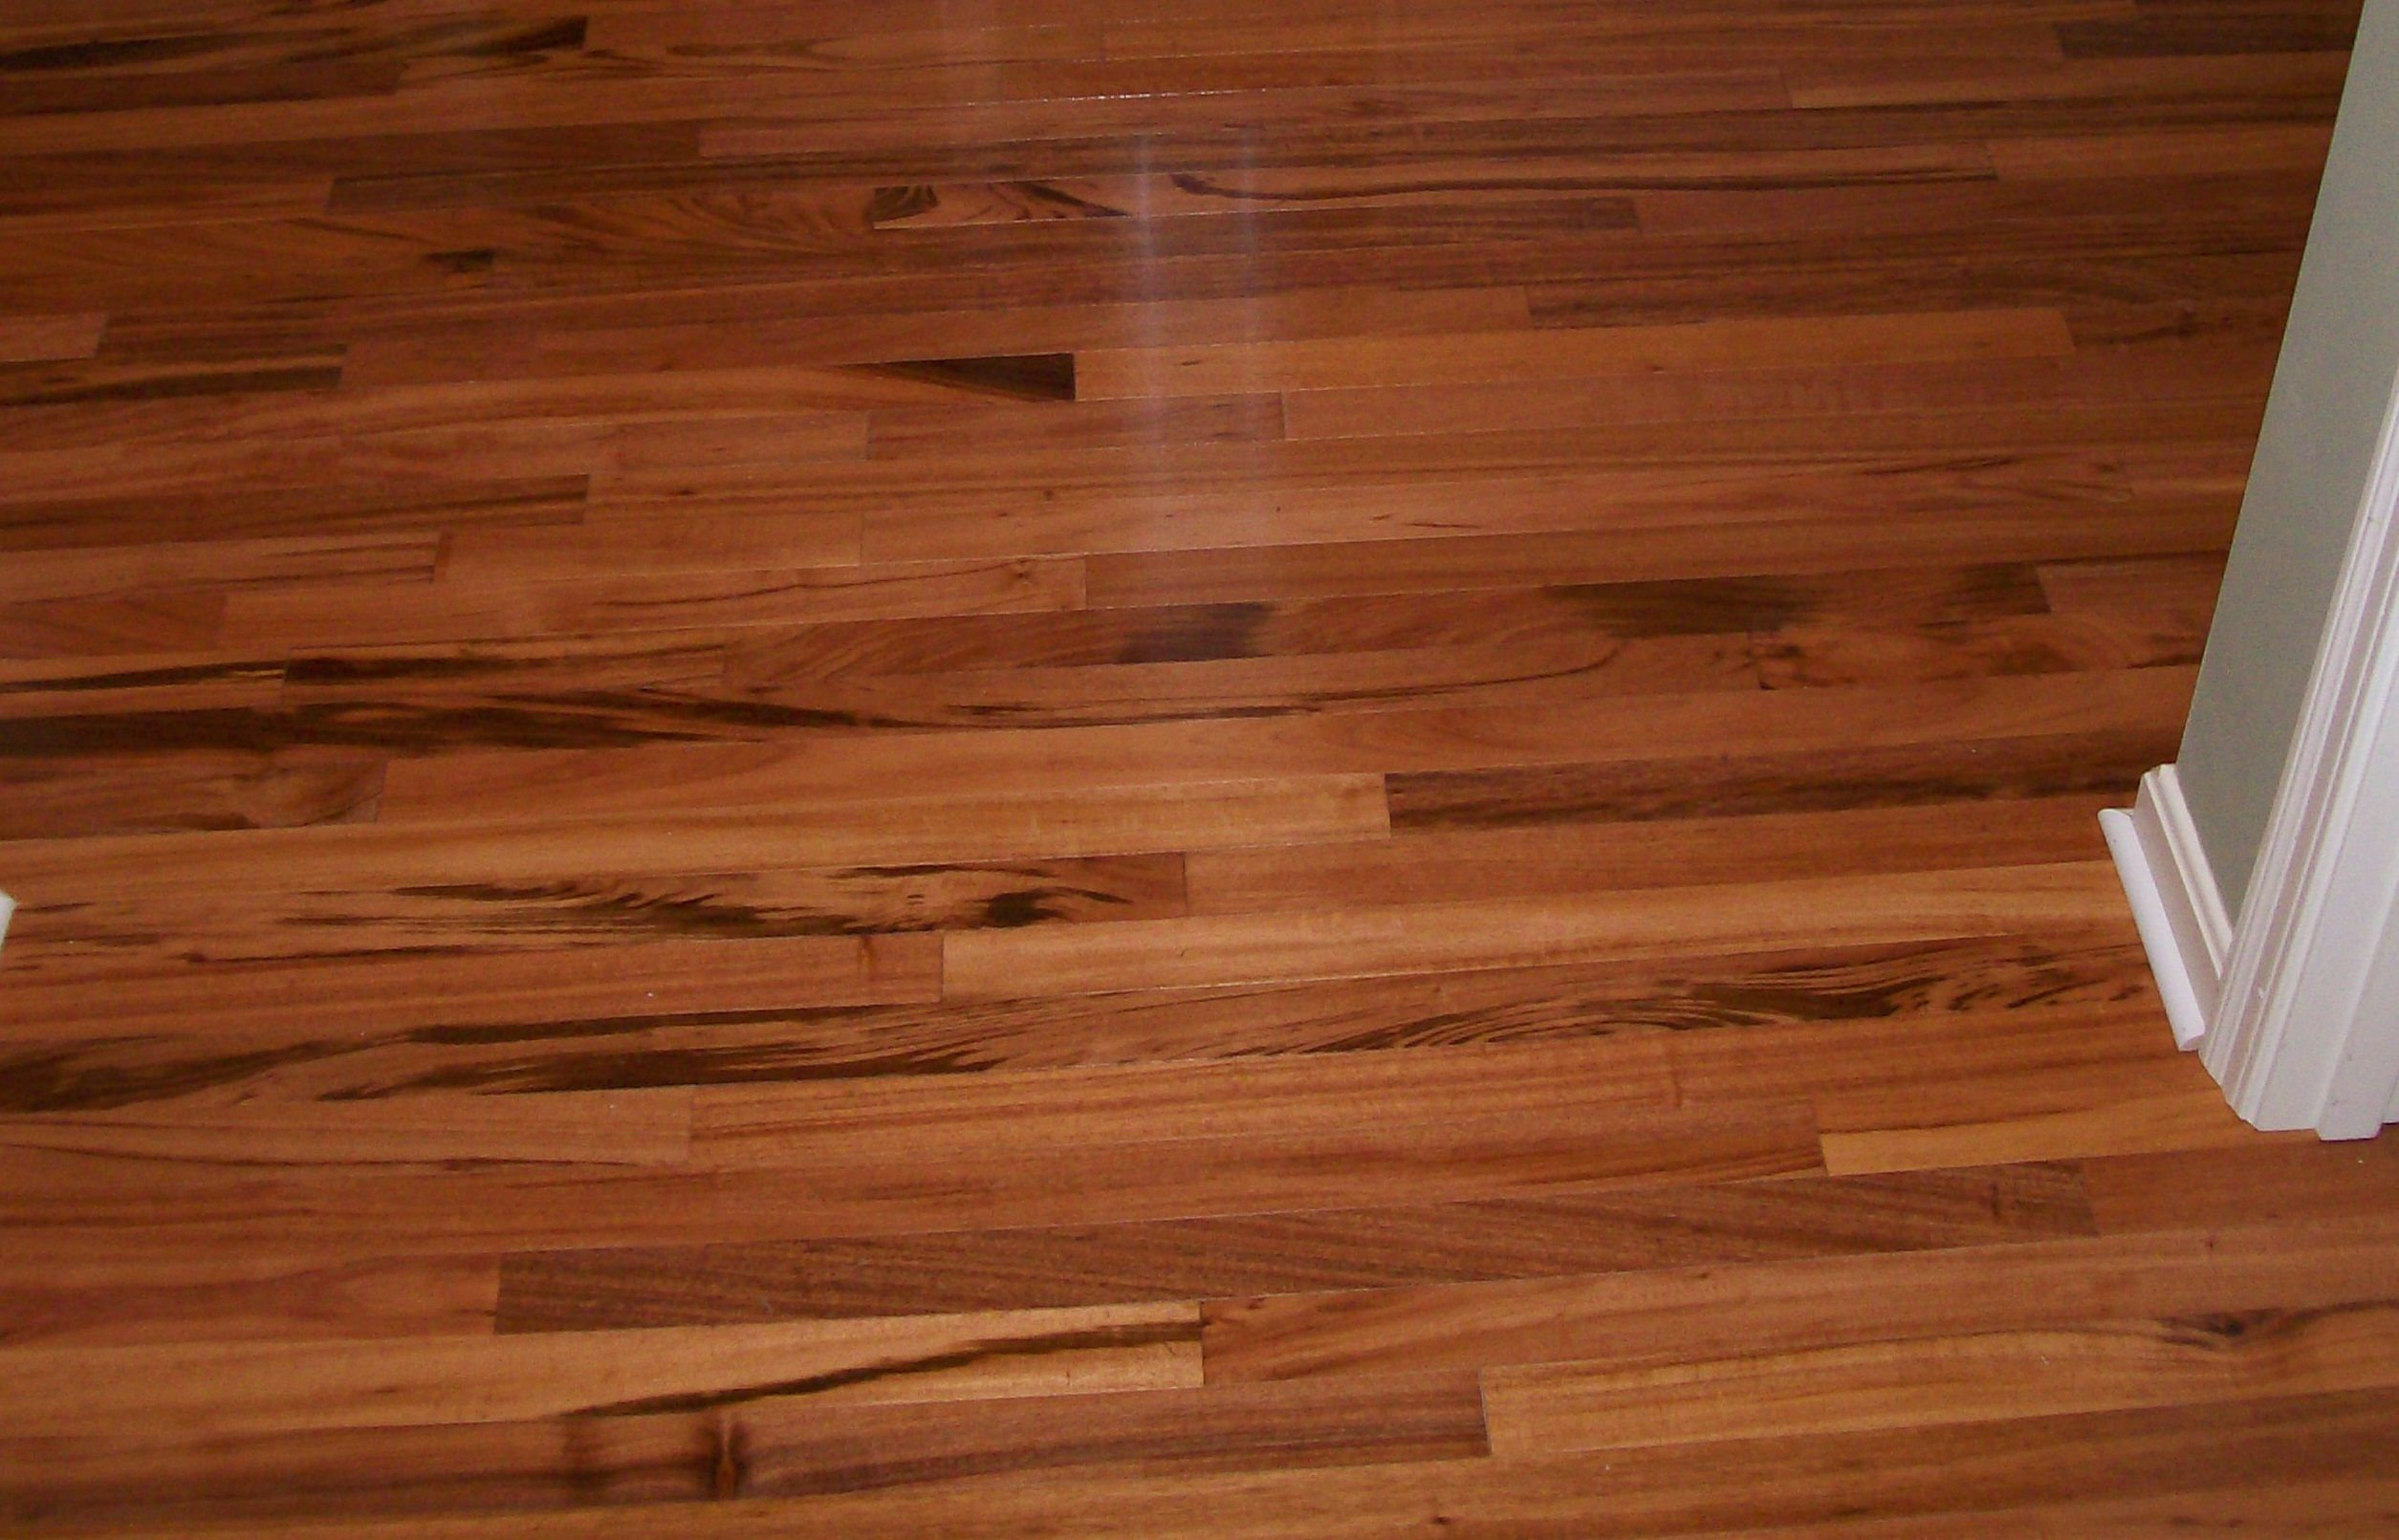 1000+ images about Home : Lino Floor on Pinterest - ^